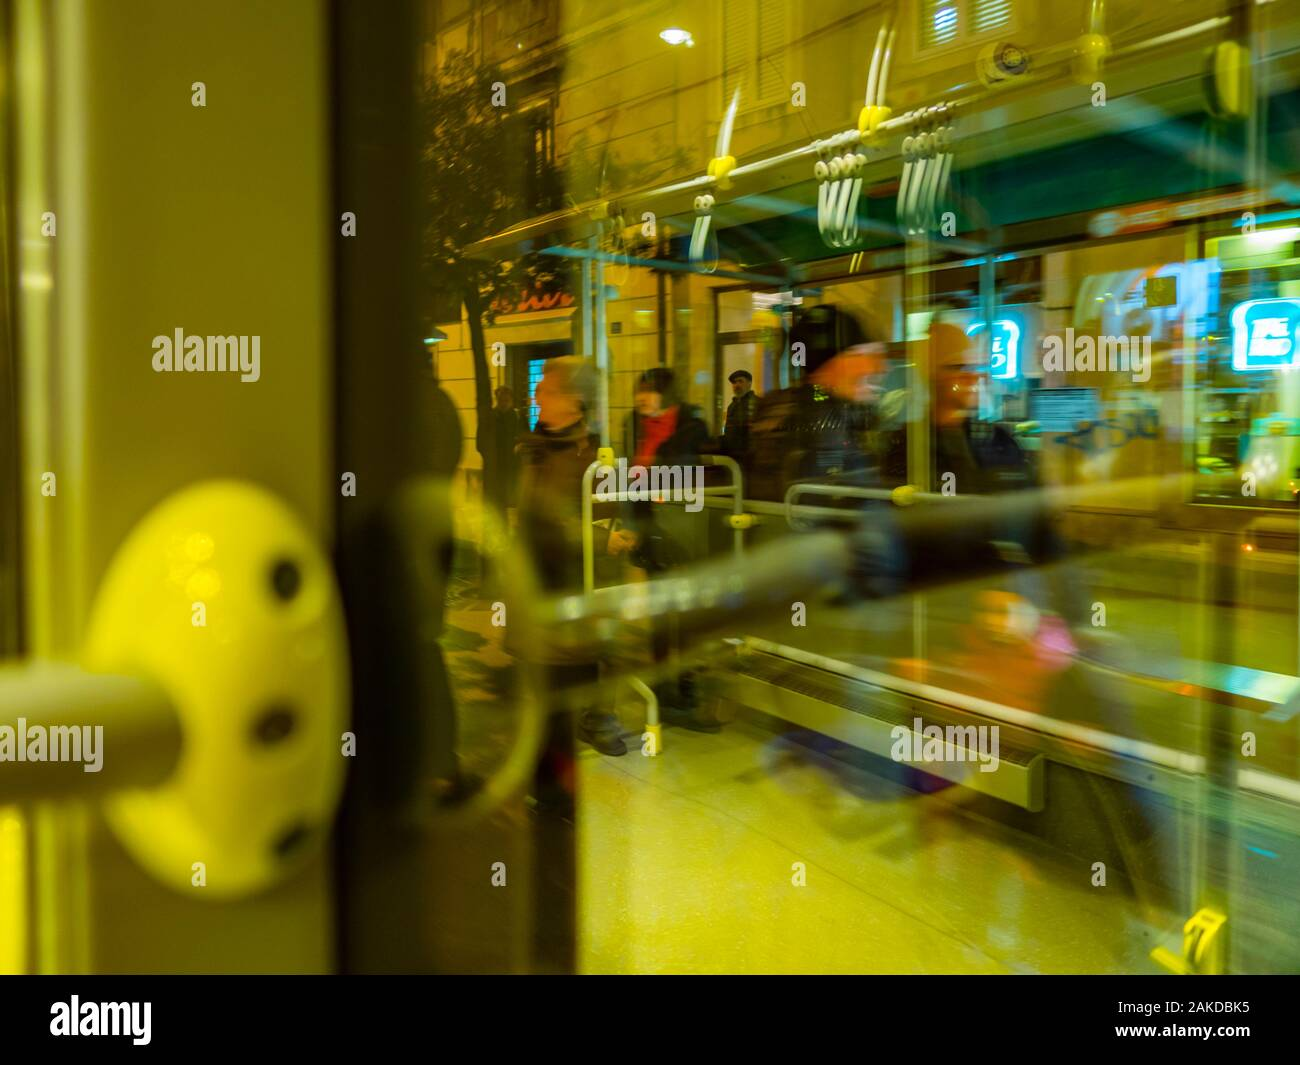 Passenger view from bus through window city town urban street background busstop stop people waiting reflection reflections Stock Photo